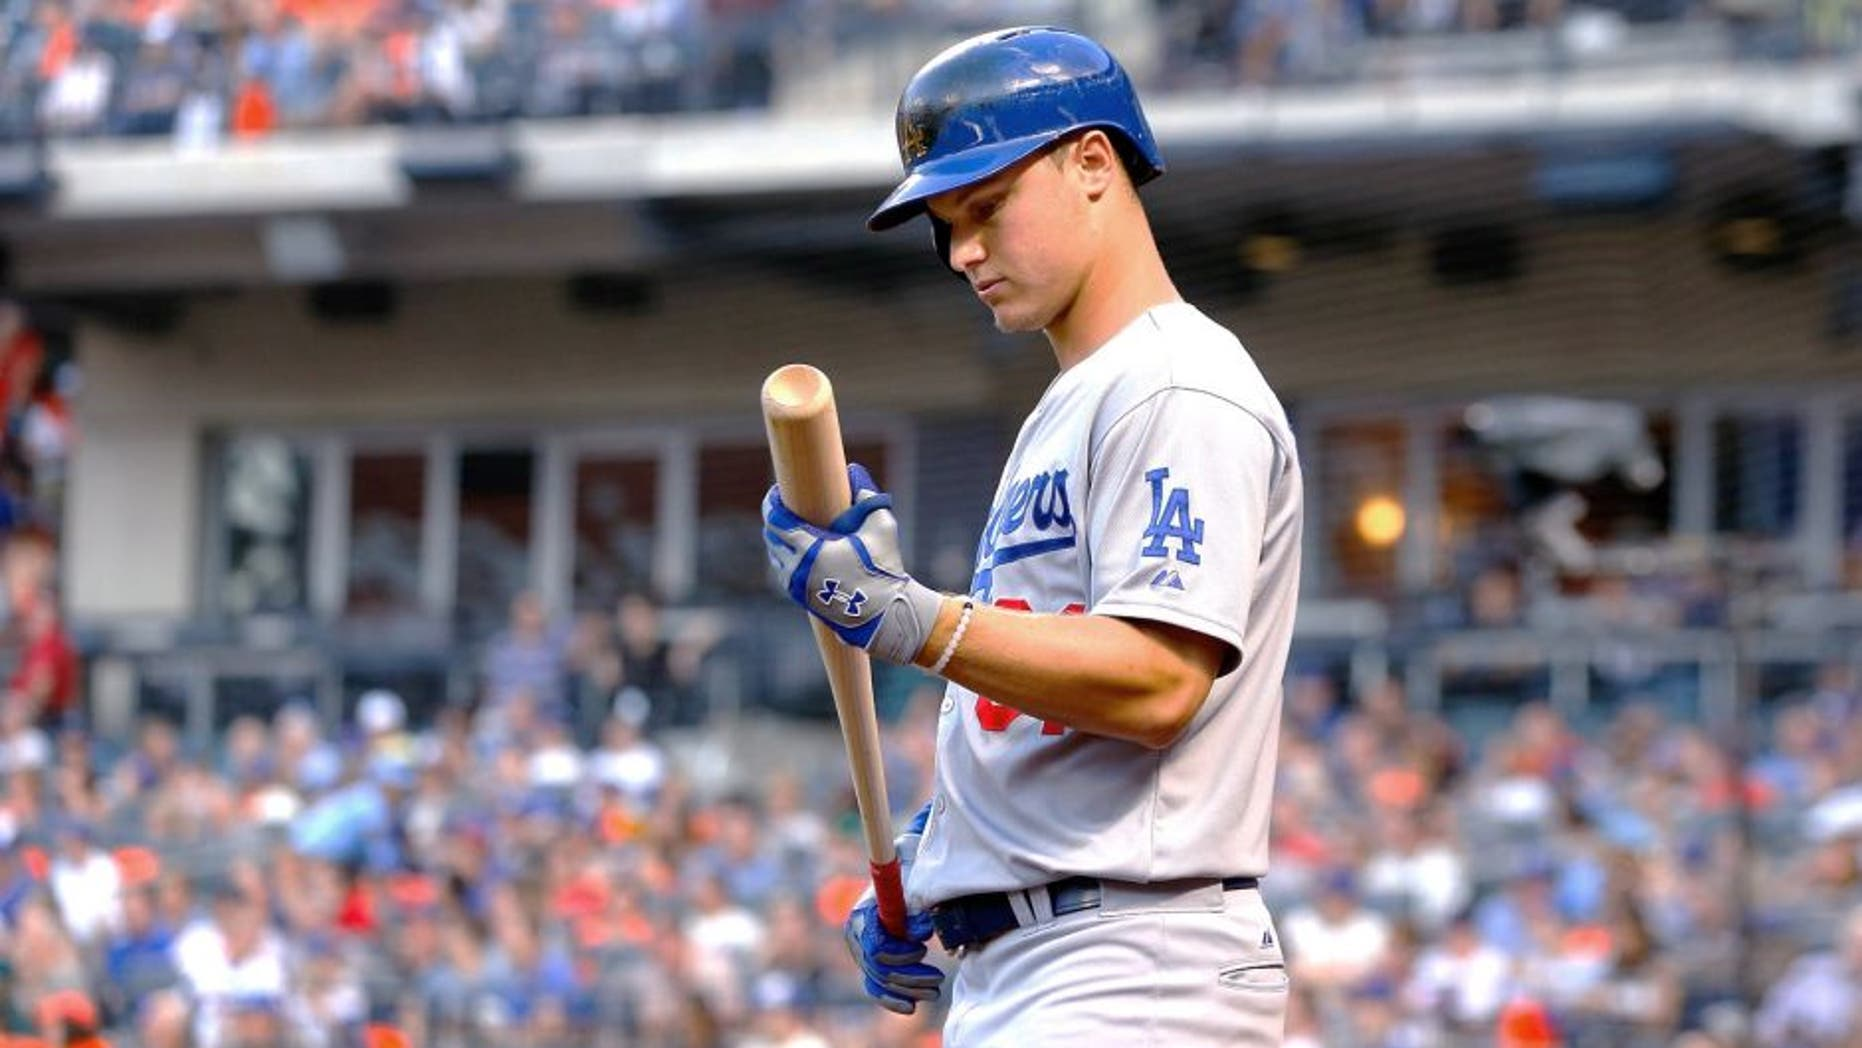 NEW YORK, NY - JULY 24: (NEW YORK DAILIES OUT) Joc Pederson #31 of the Los Angeles Dodgers in action against the New York Mets at Citi Field on July 24, 2015 in the Flushing neighborhood of the Queens borough of New York City. The Dodgers defeated the Mets 7-2. (Photo by Jim McIsaac/Getty Images)